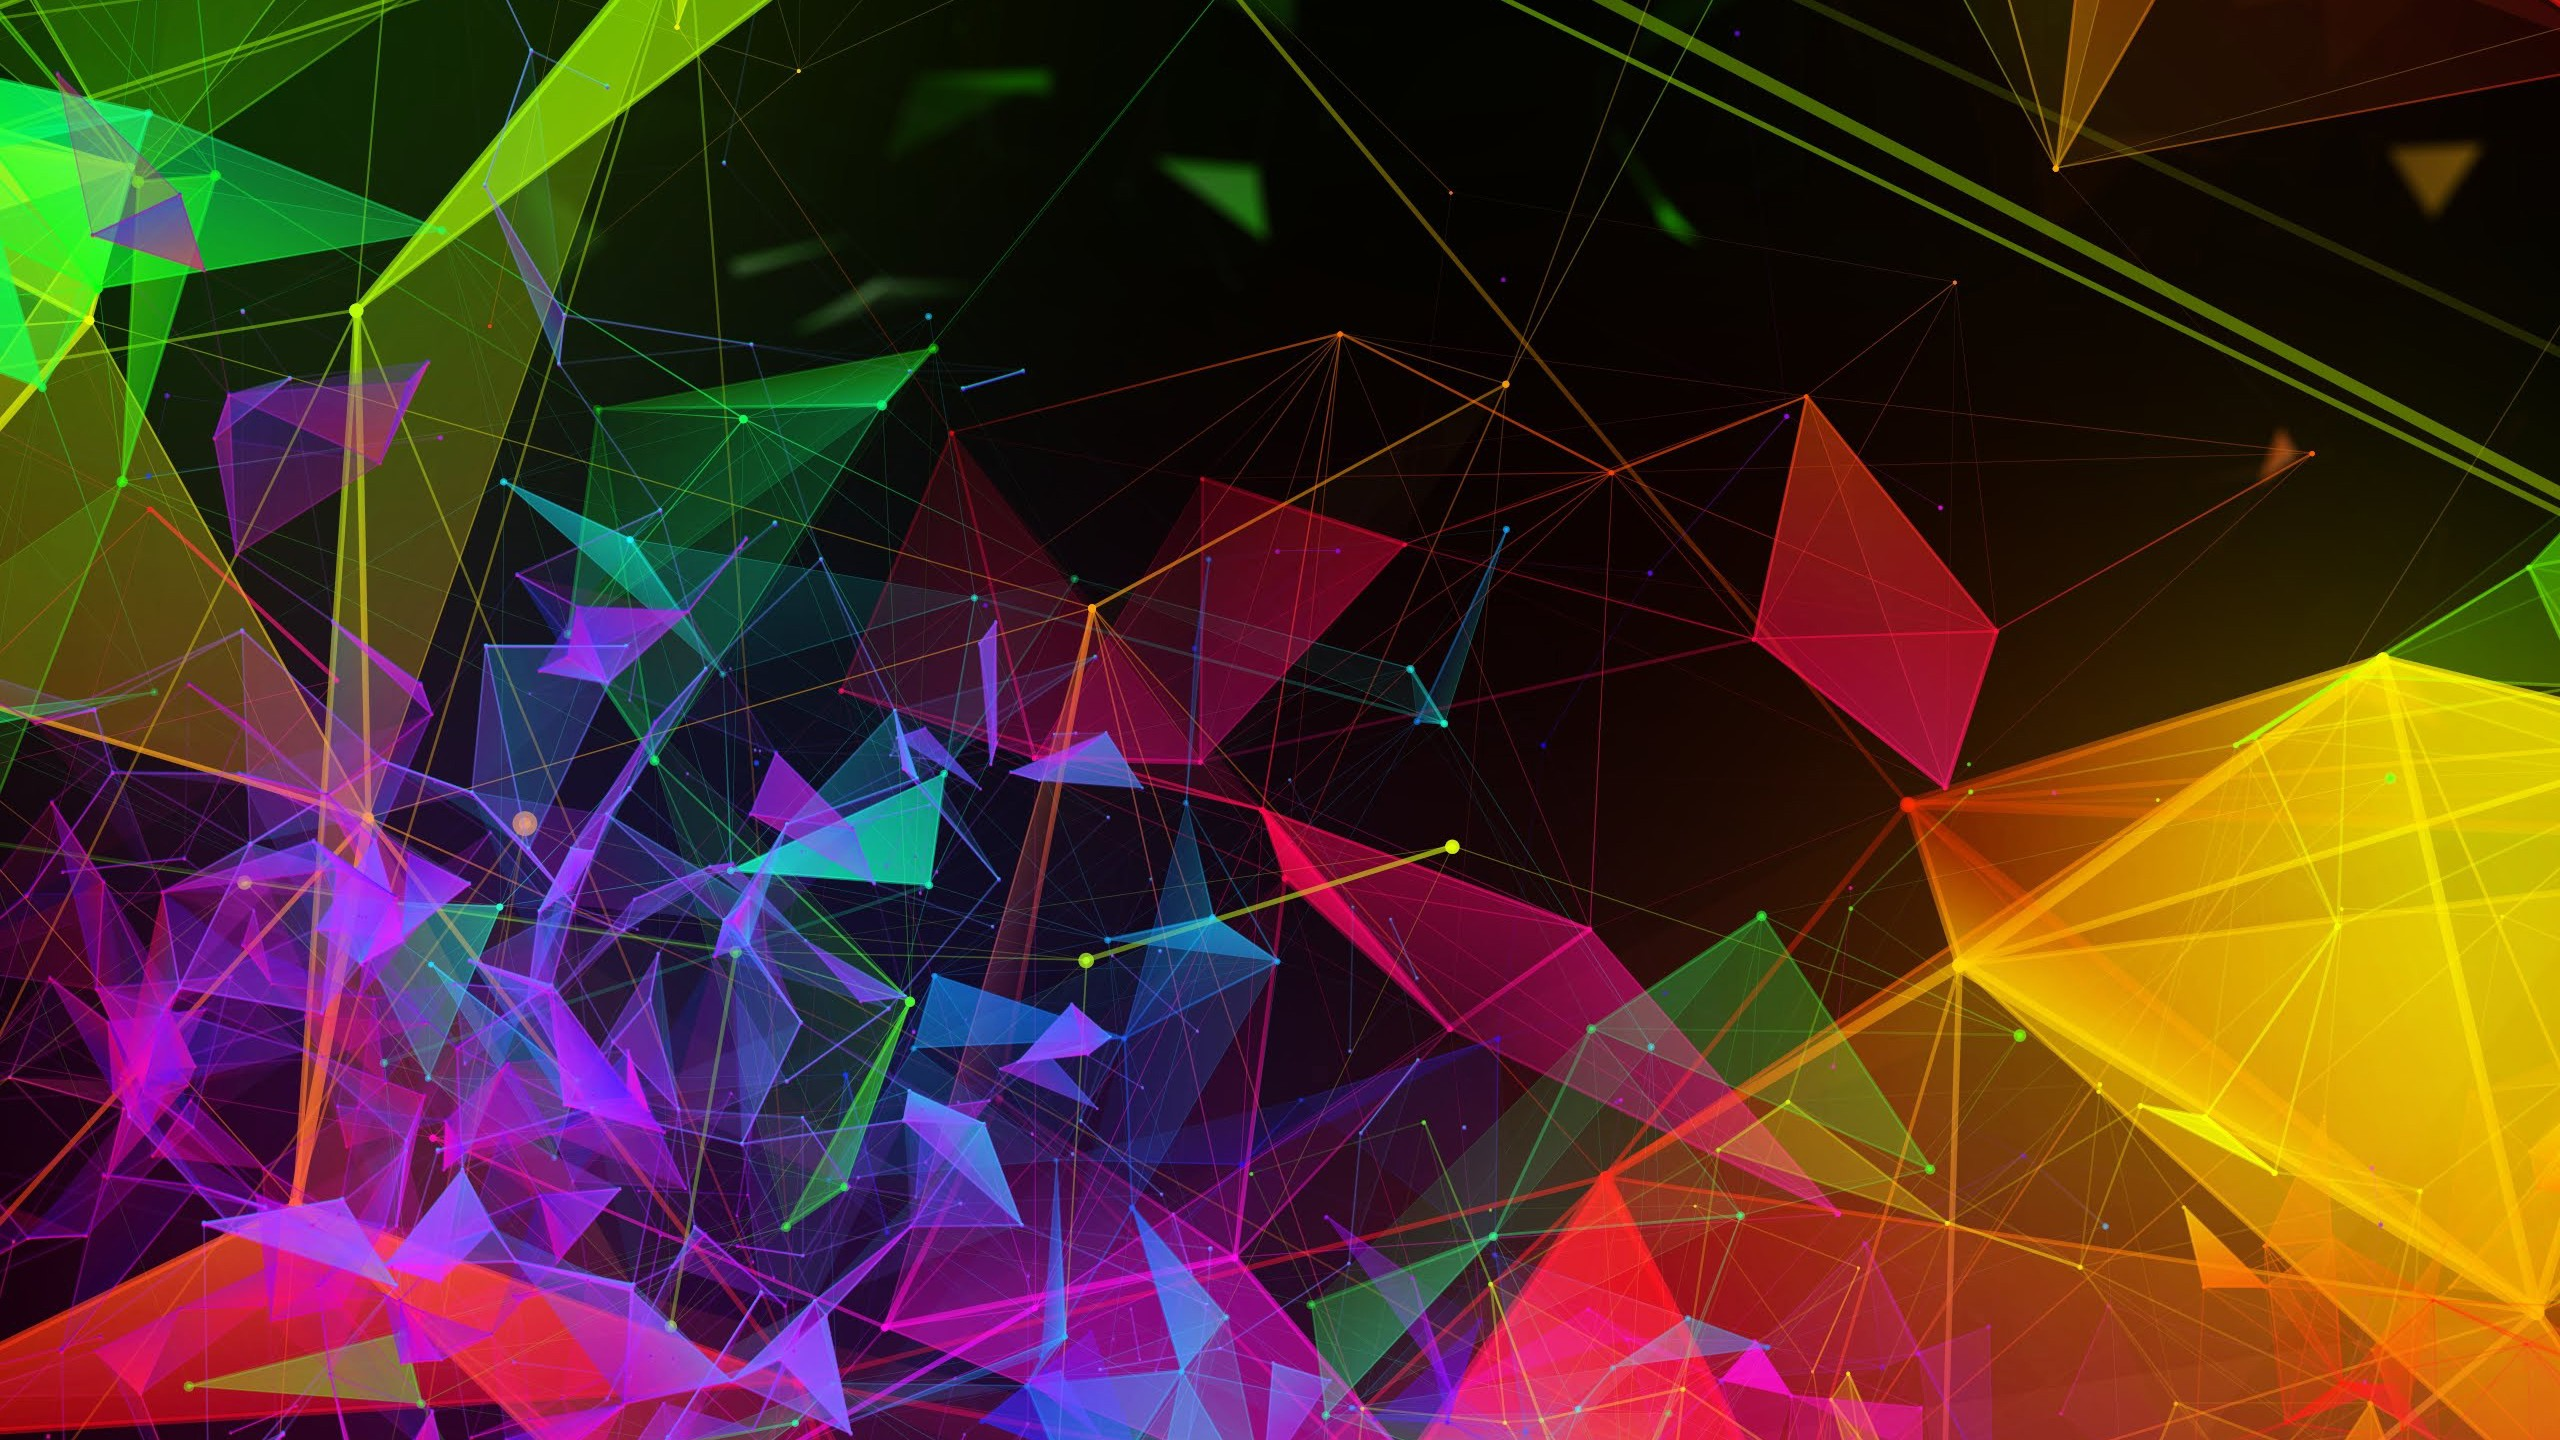 Wallpaper Razer Phone 2 abstract colorful HD OS 20755